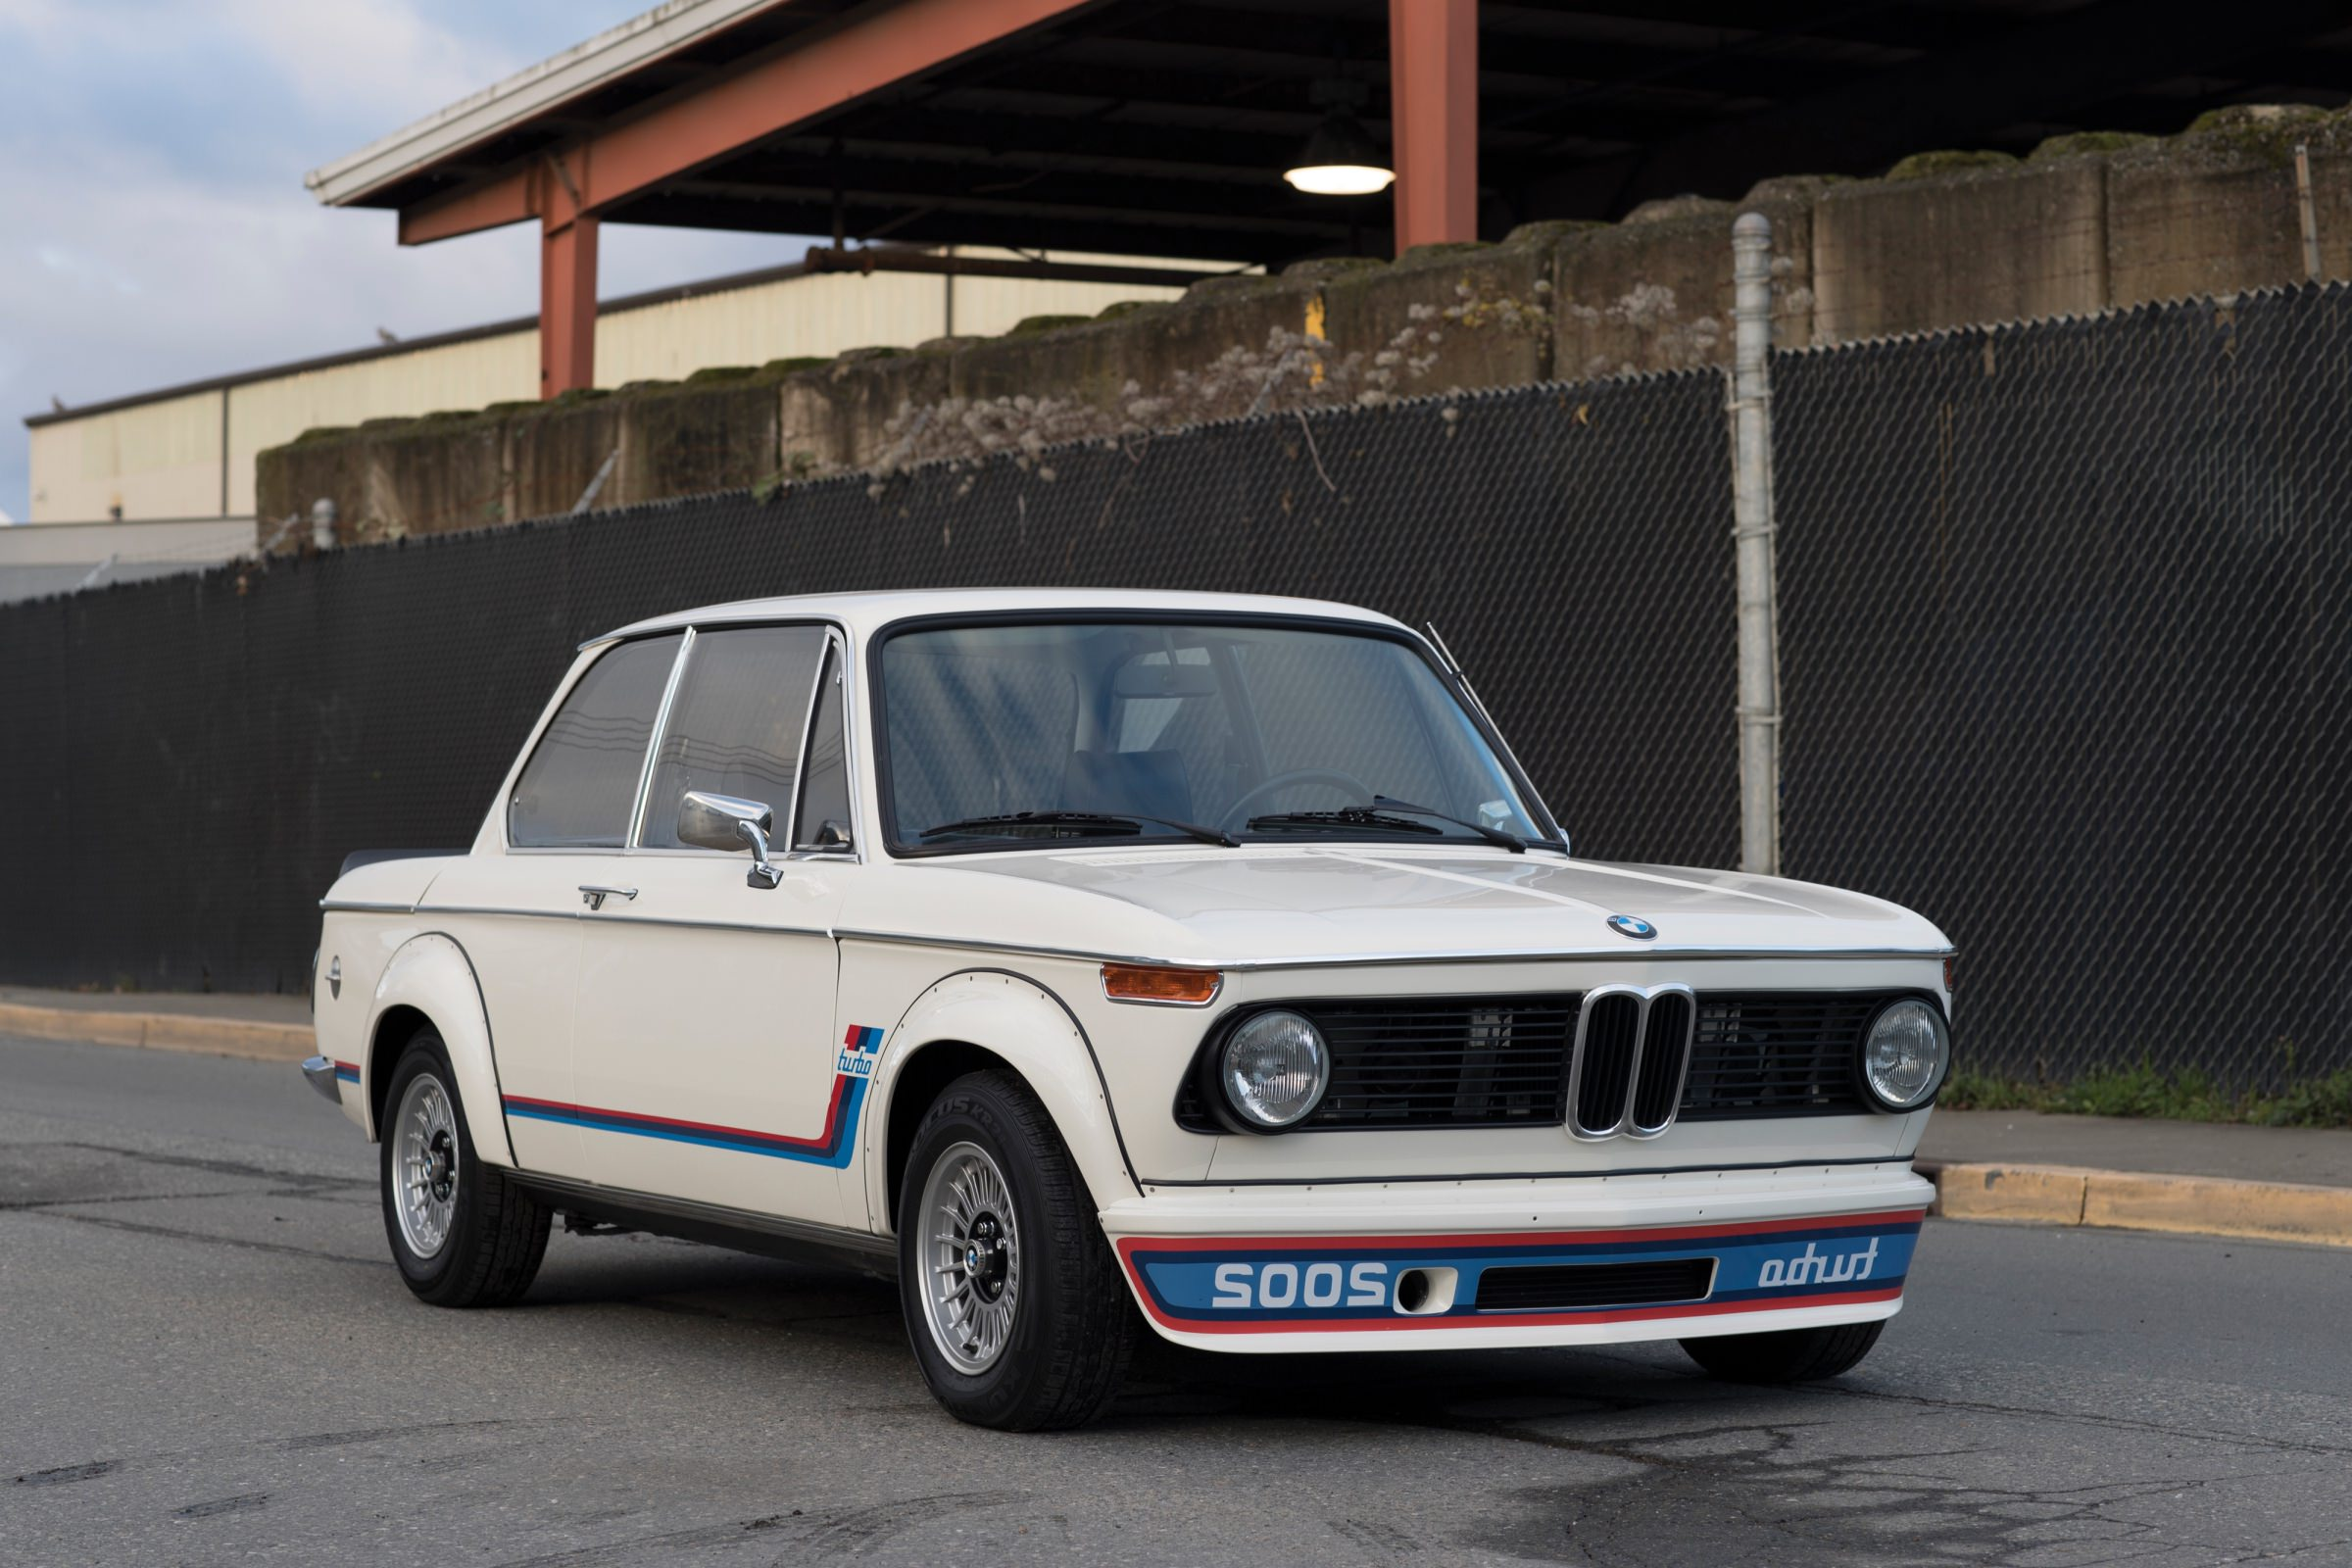 1974 bmw 2002 turbo the mighty little bmw that started it all. Black Bedroom Furniture Sets. Home Design Ideas